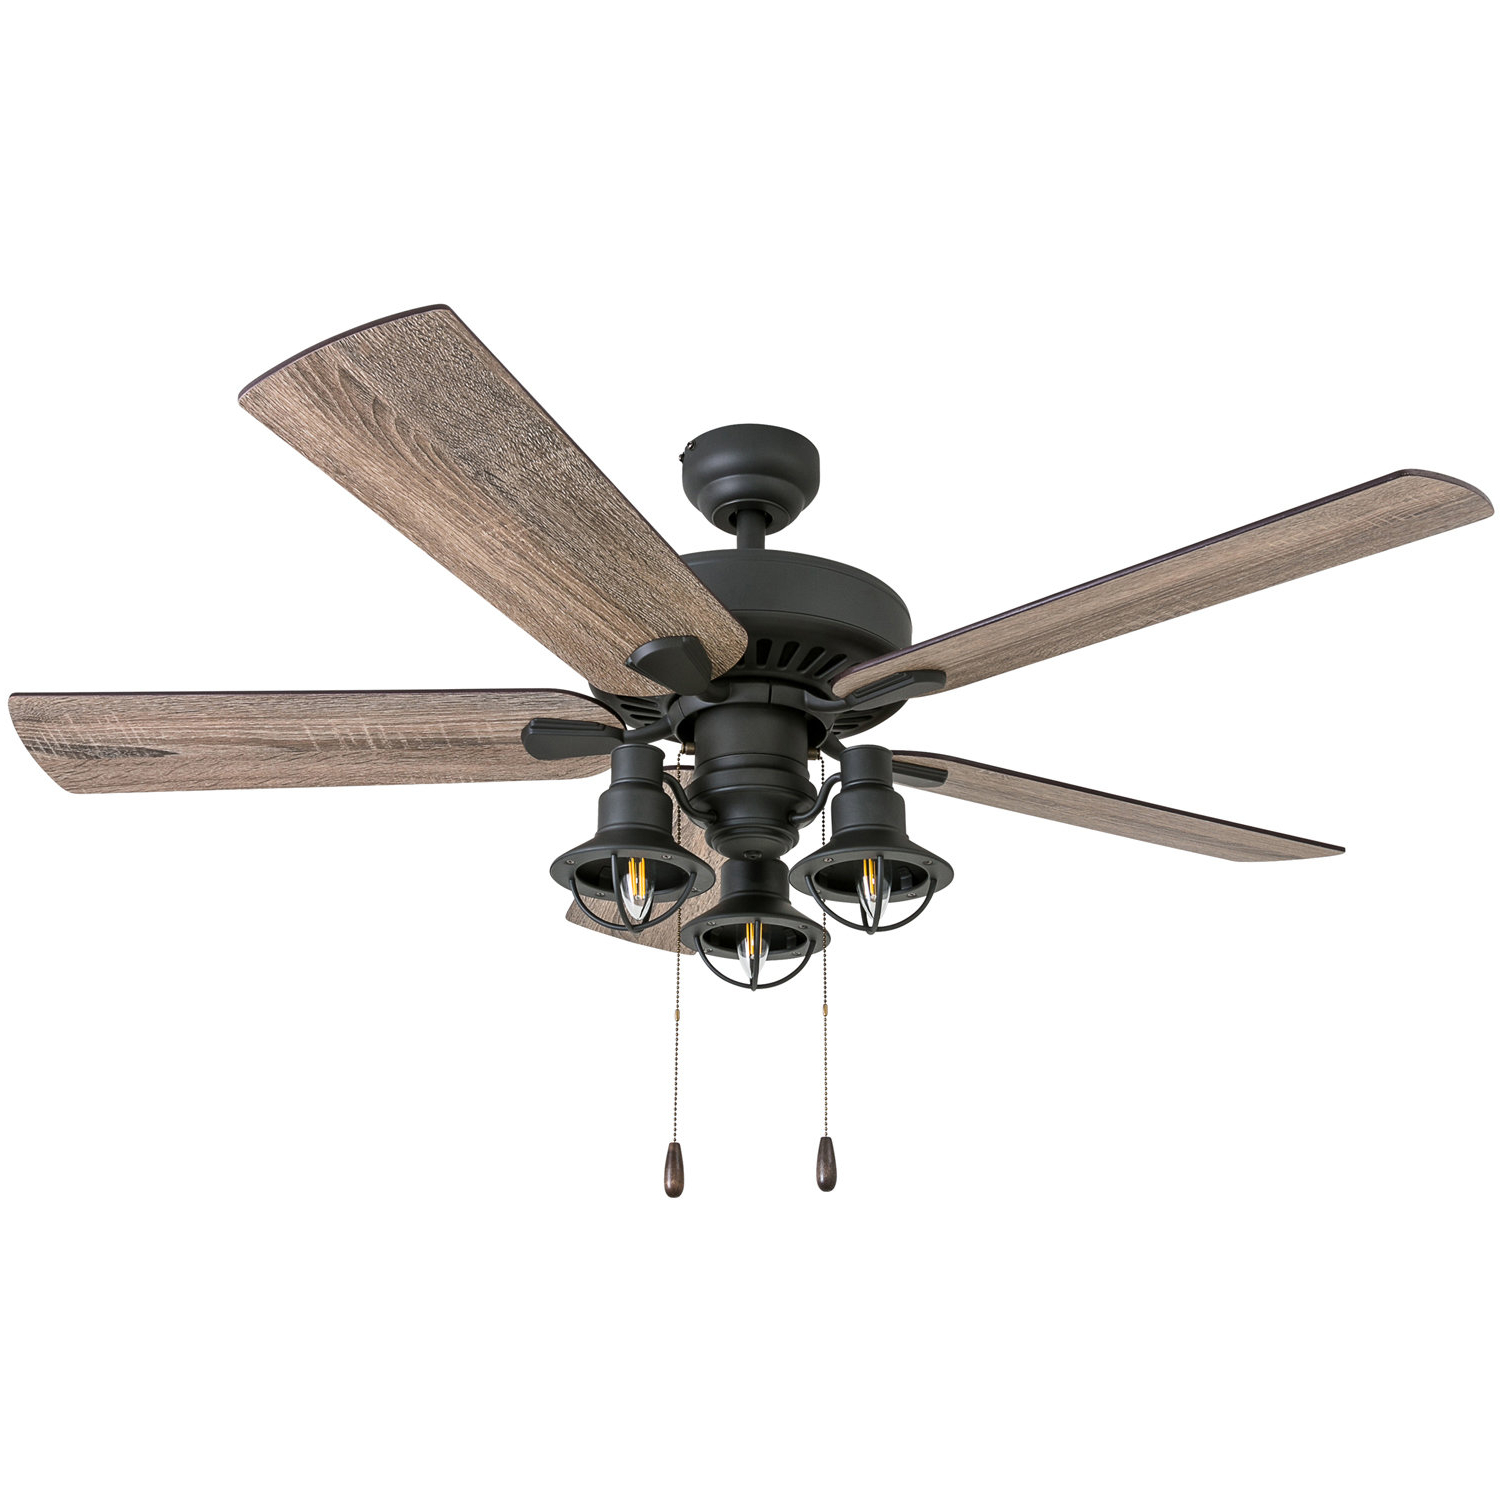 "Ratcliffe 5 Blade Led Ceiling Fans Regarding Trendy 52"" Ravello 5 Blade Led Ceiling Fan, Light Kit Included (View 18 of 20)"